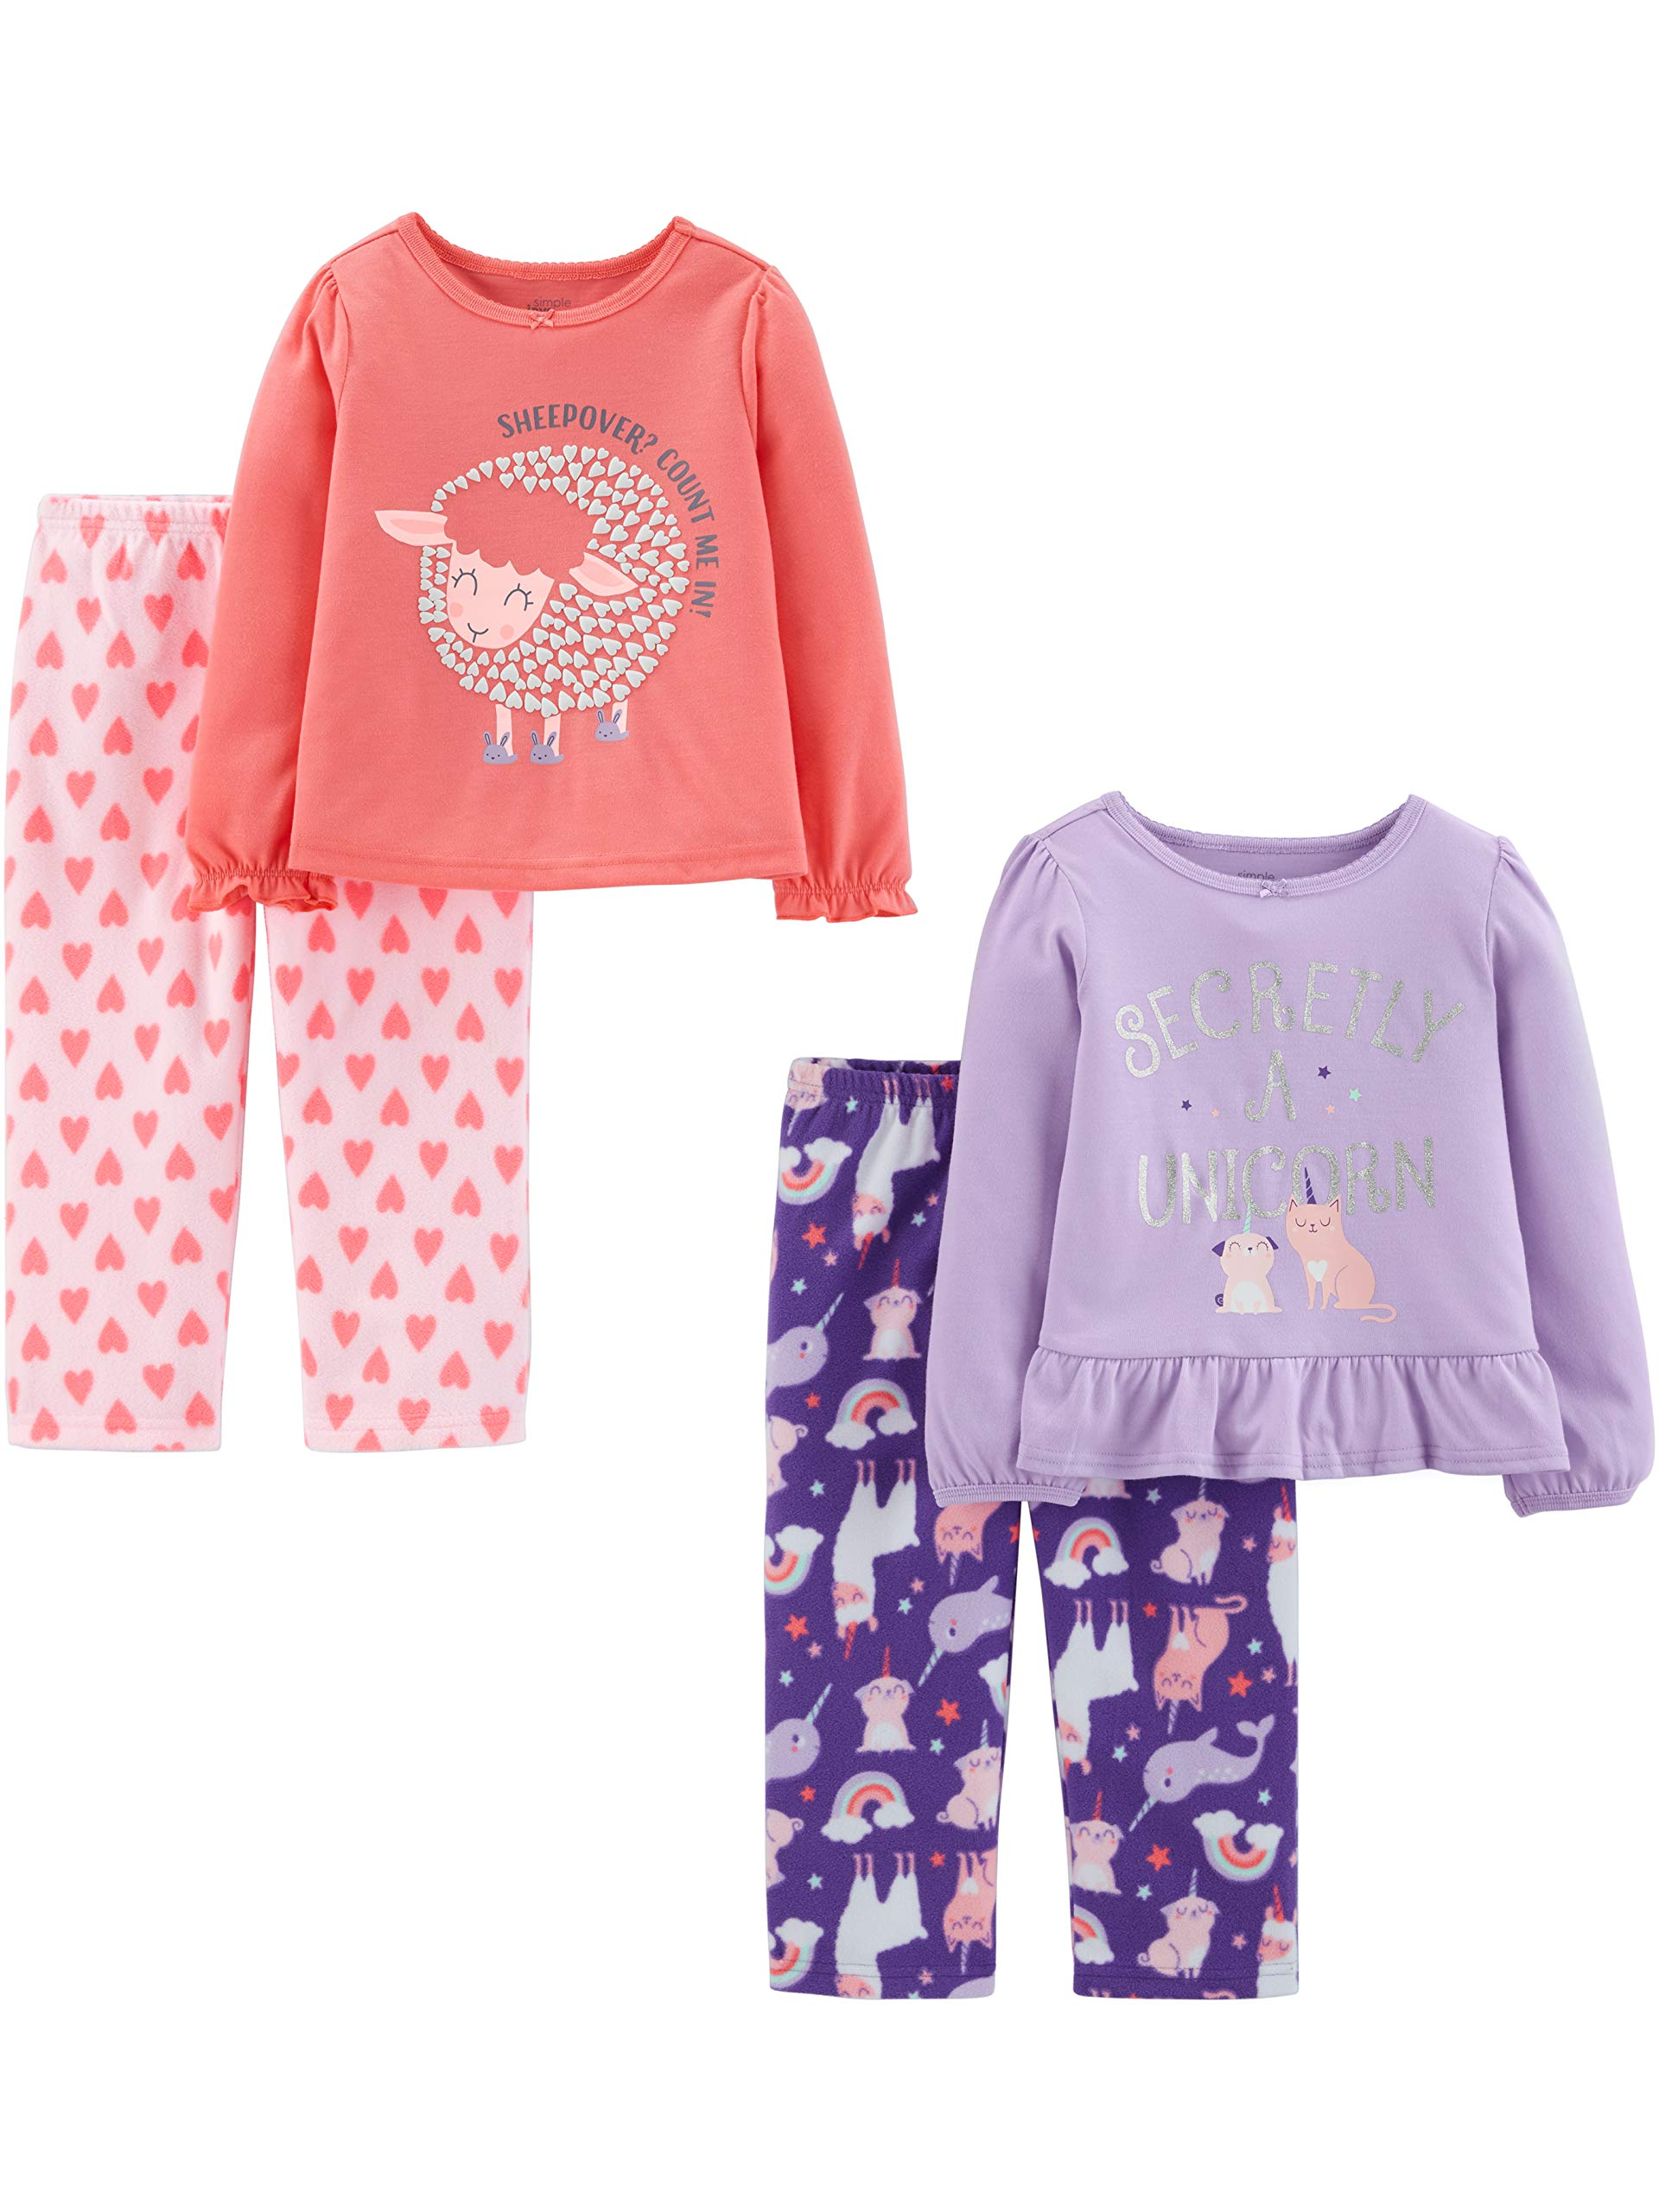 Simple Joys by Carter's Toddler Girls' 4-Piece Fleece Pajama Set (Poly Top & Fleece Bottom)